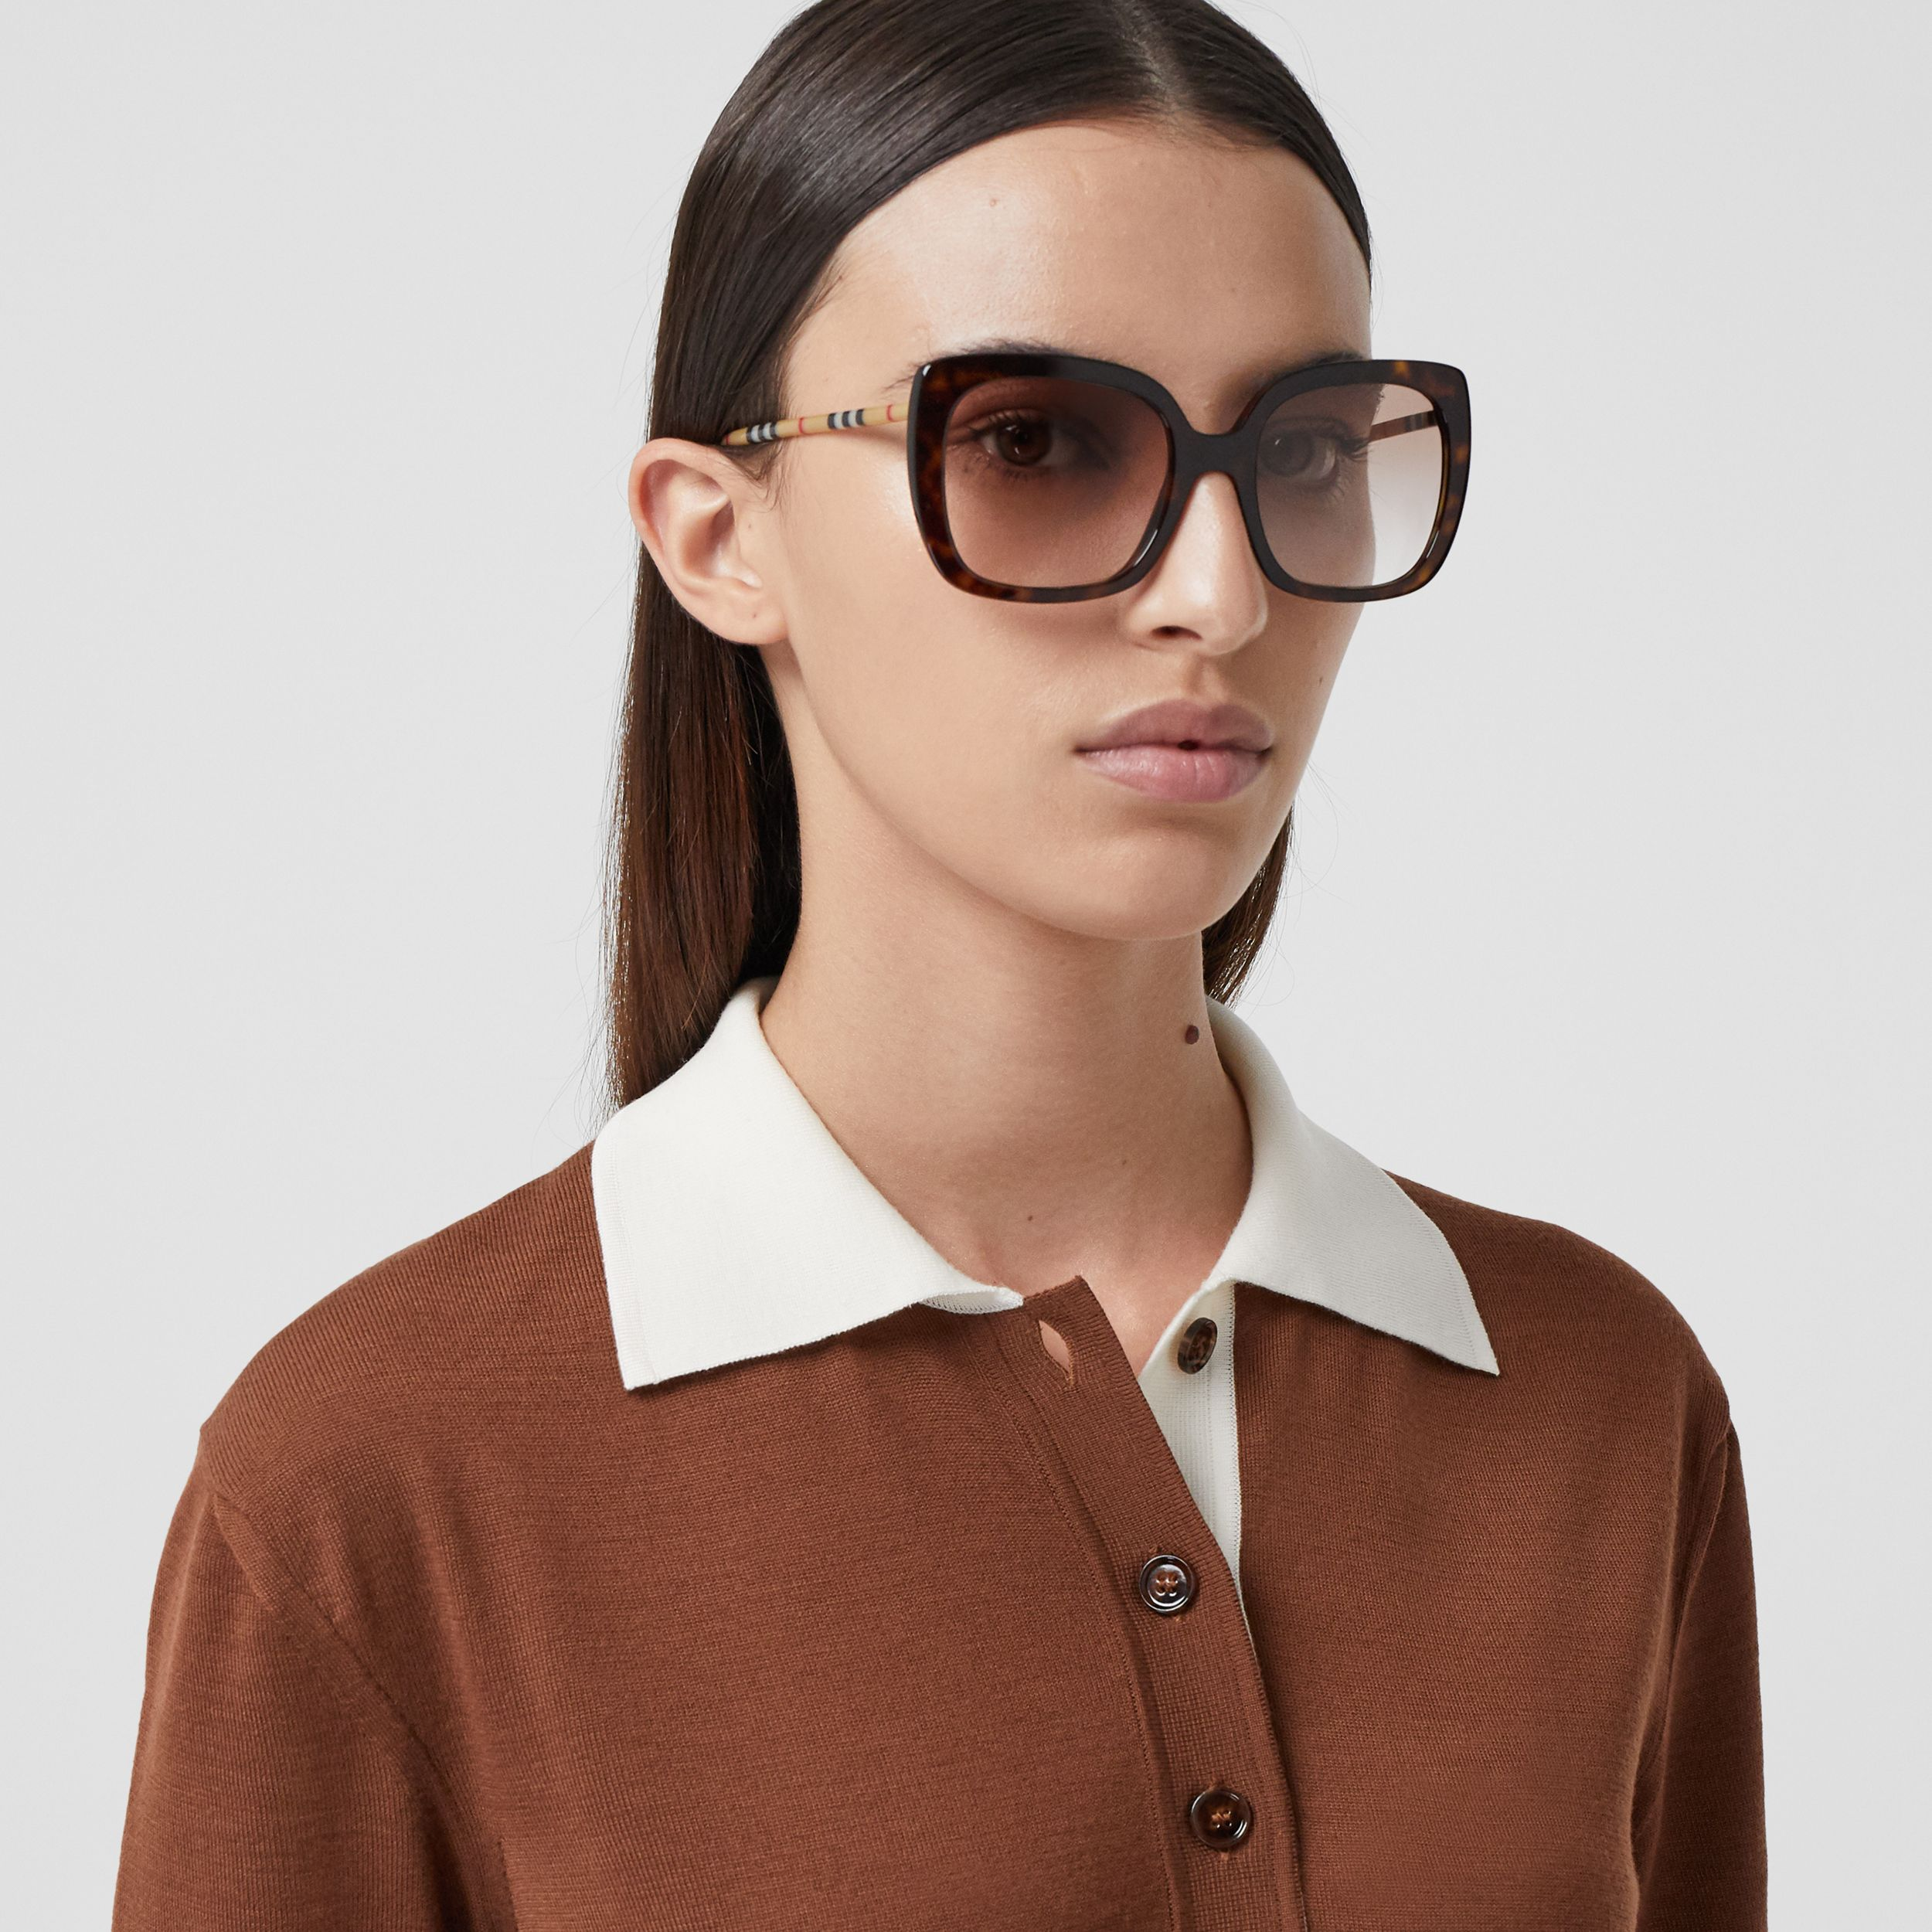 Oversized Square Frame Sunglasses in Tortoiseshell - Women | Burberry Canada - 3